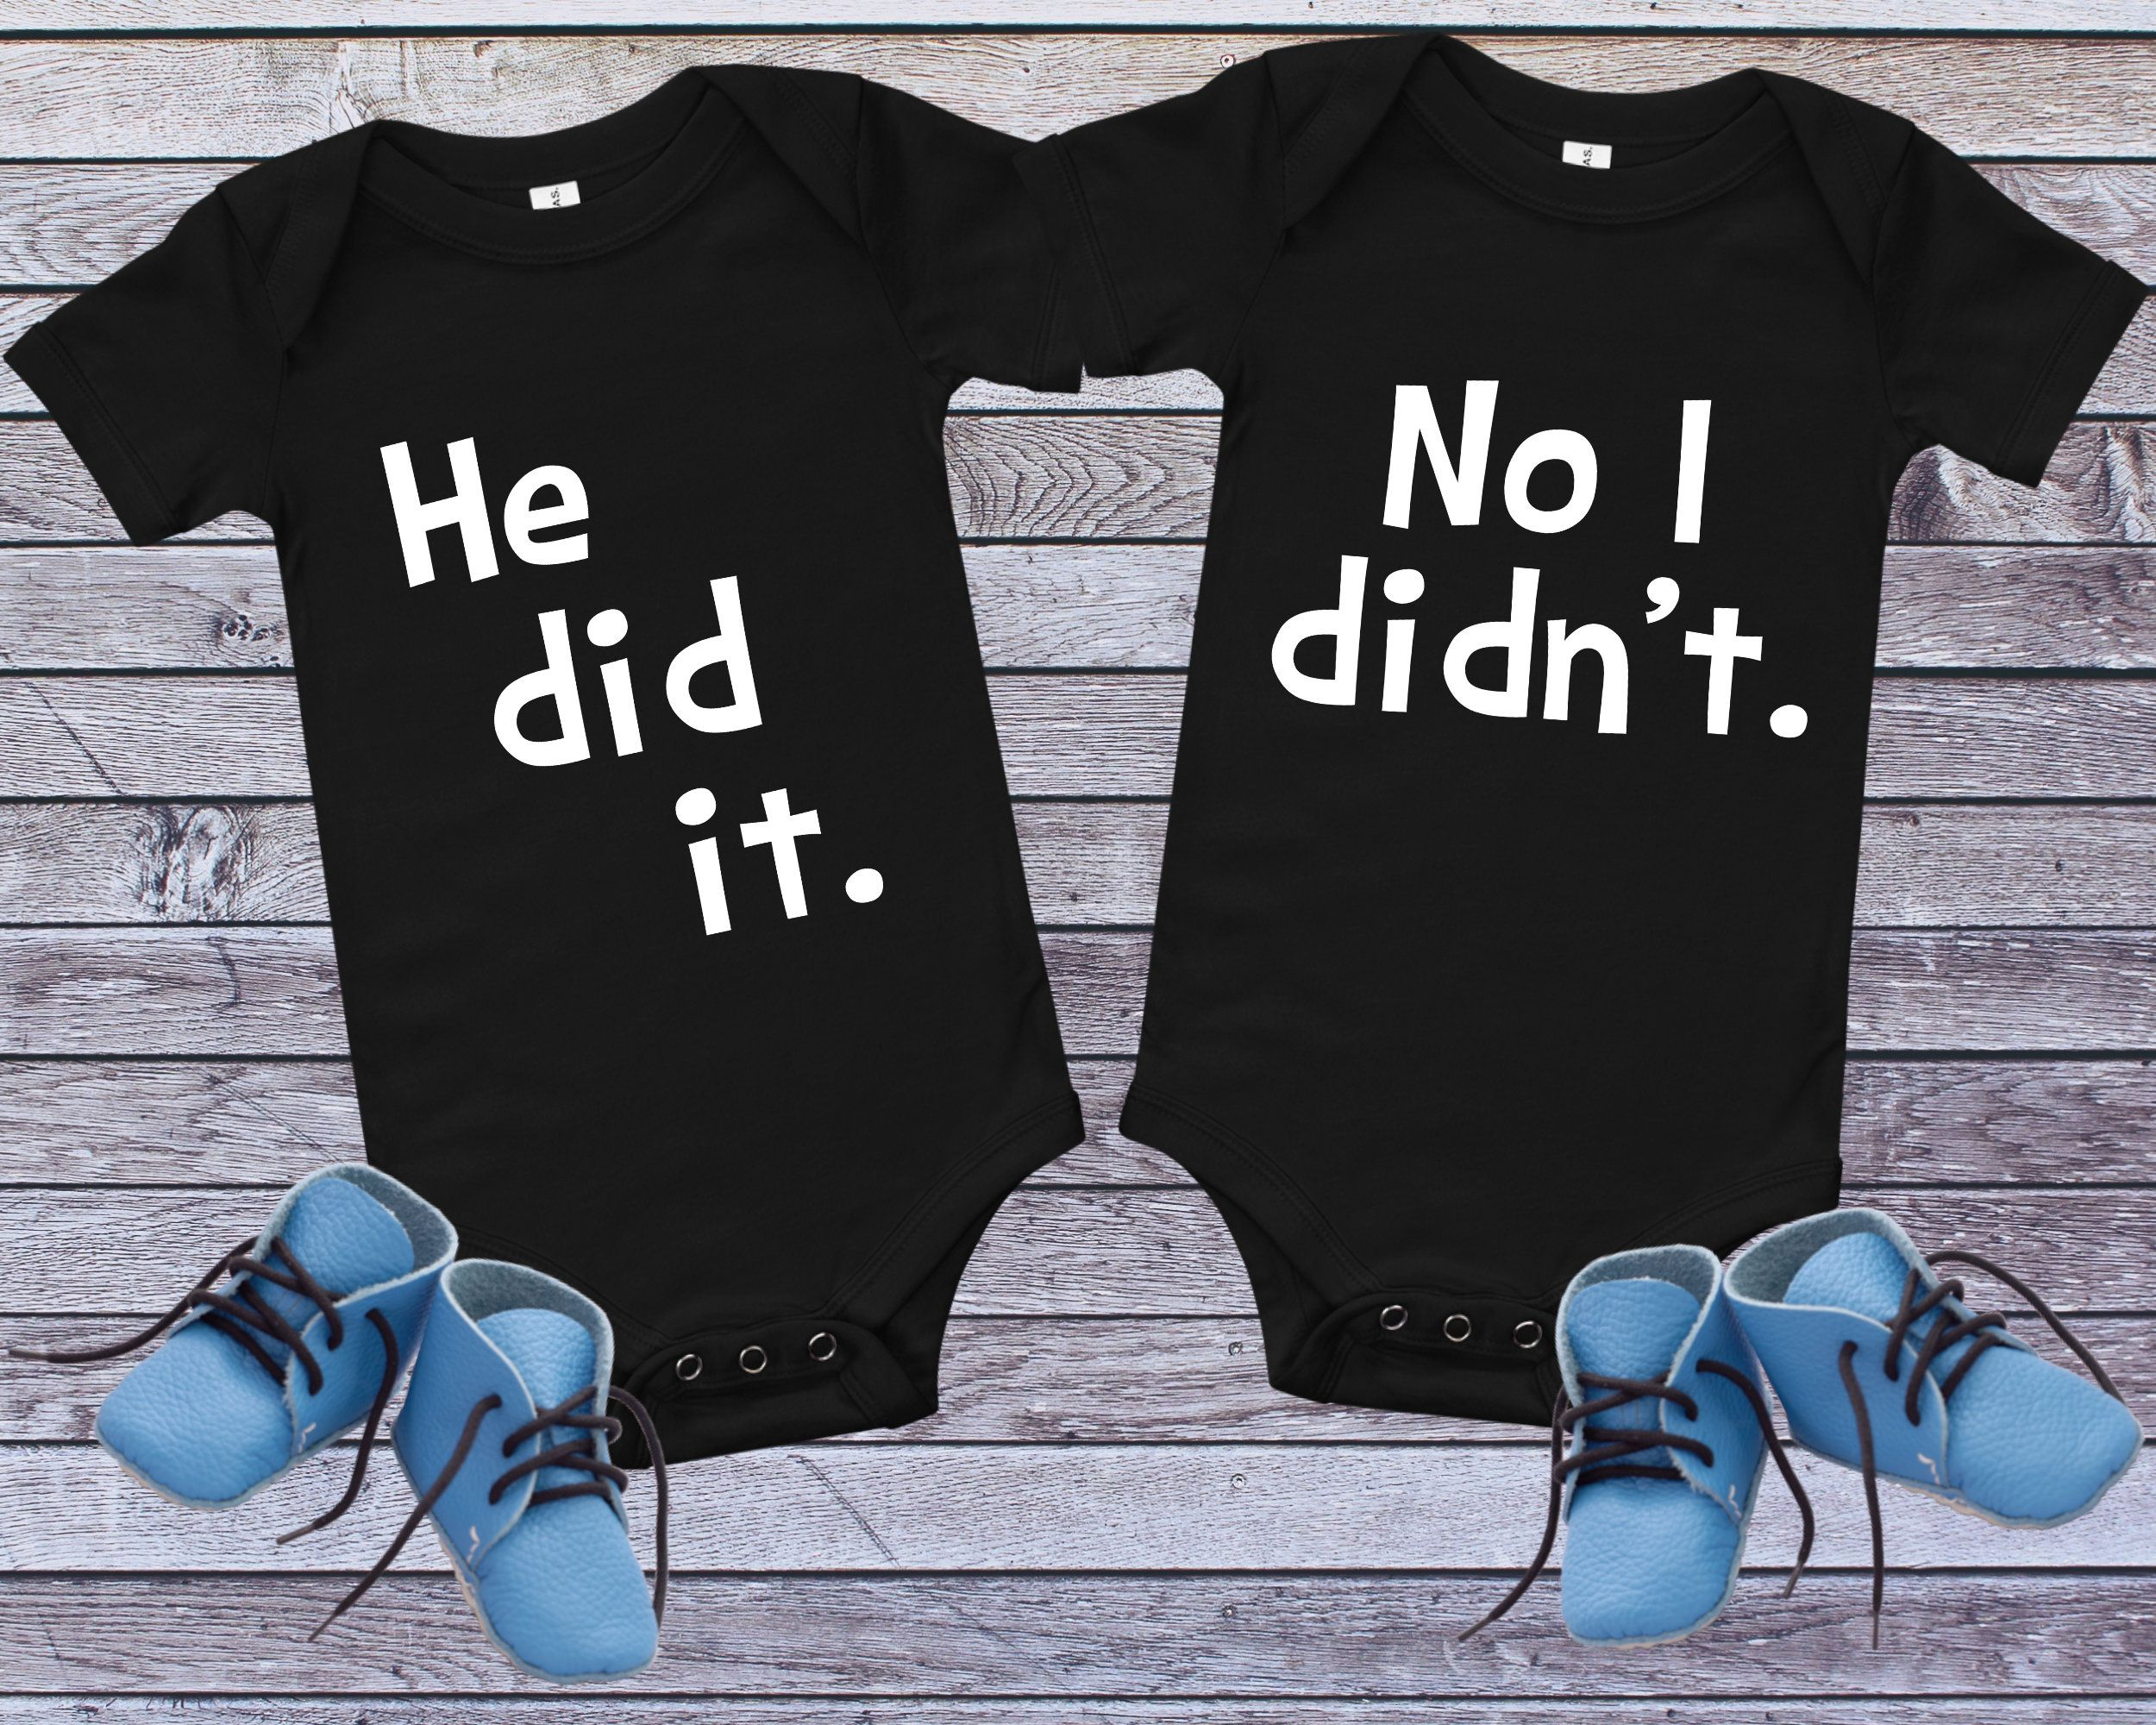 Boy Twins Funny Twin Shirt Baby Shower Gift Birthday Gift Best Buds Best Brothers Boy Bodysuits Cute Twin Shirts Twin Theme Bodysuit